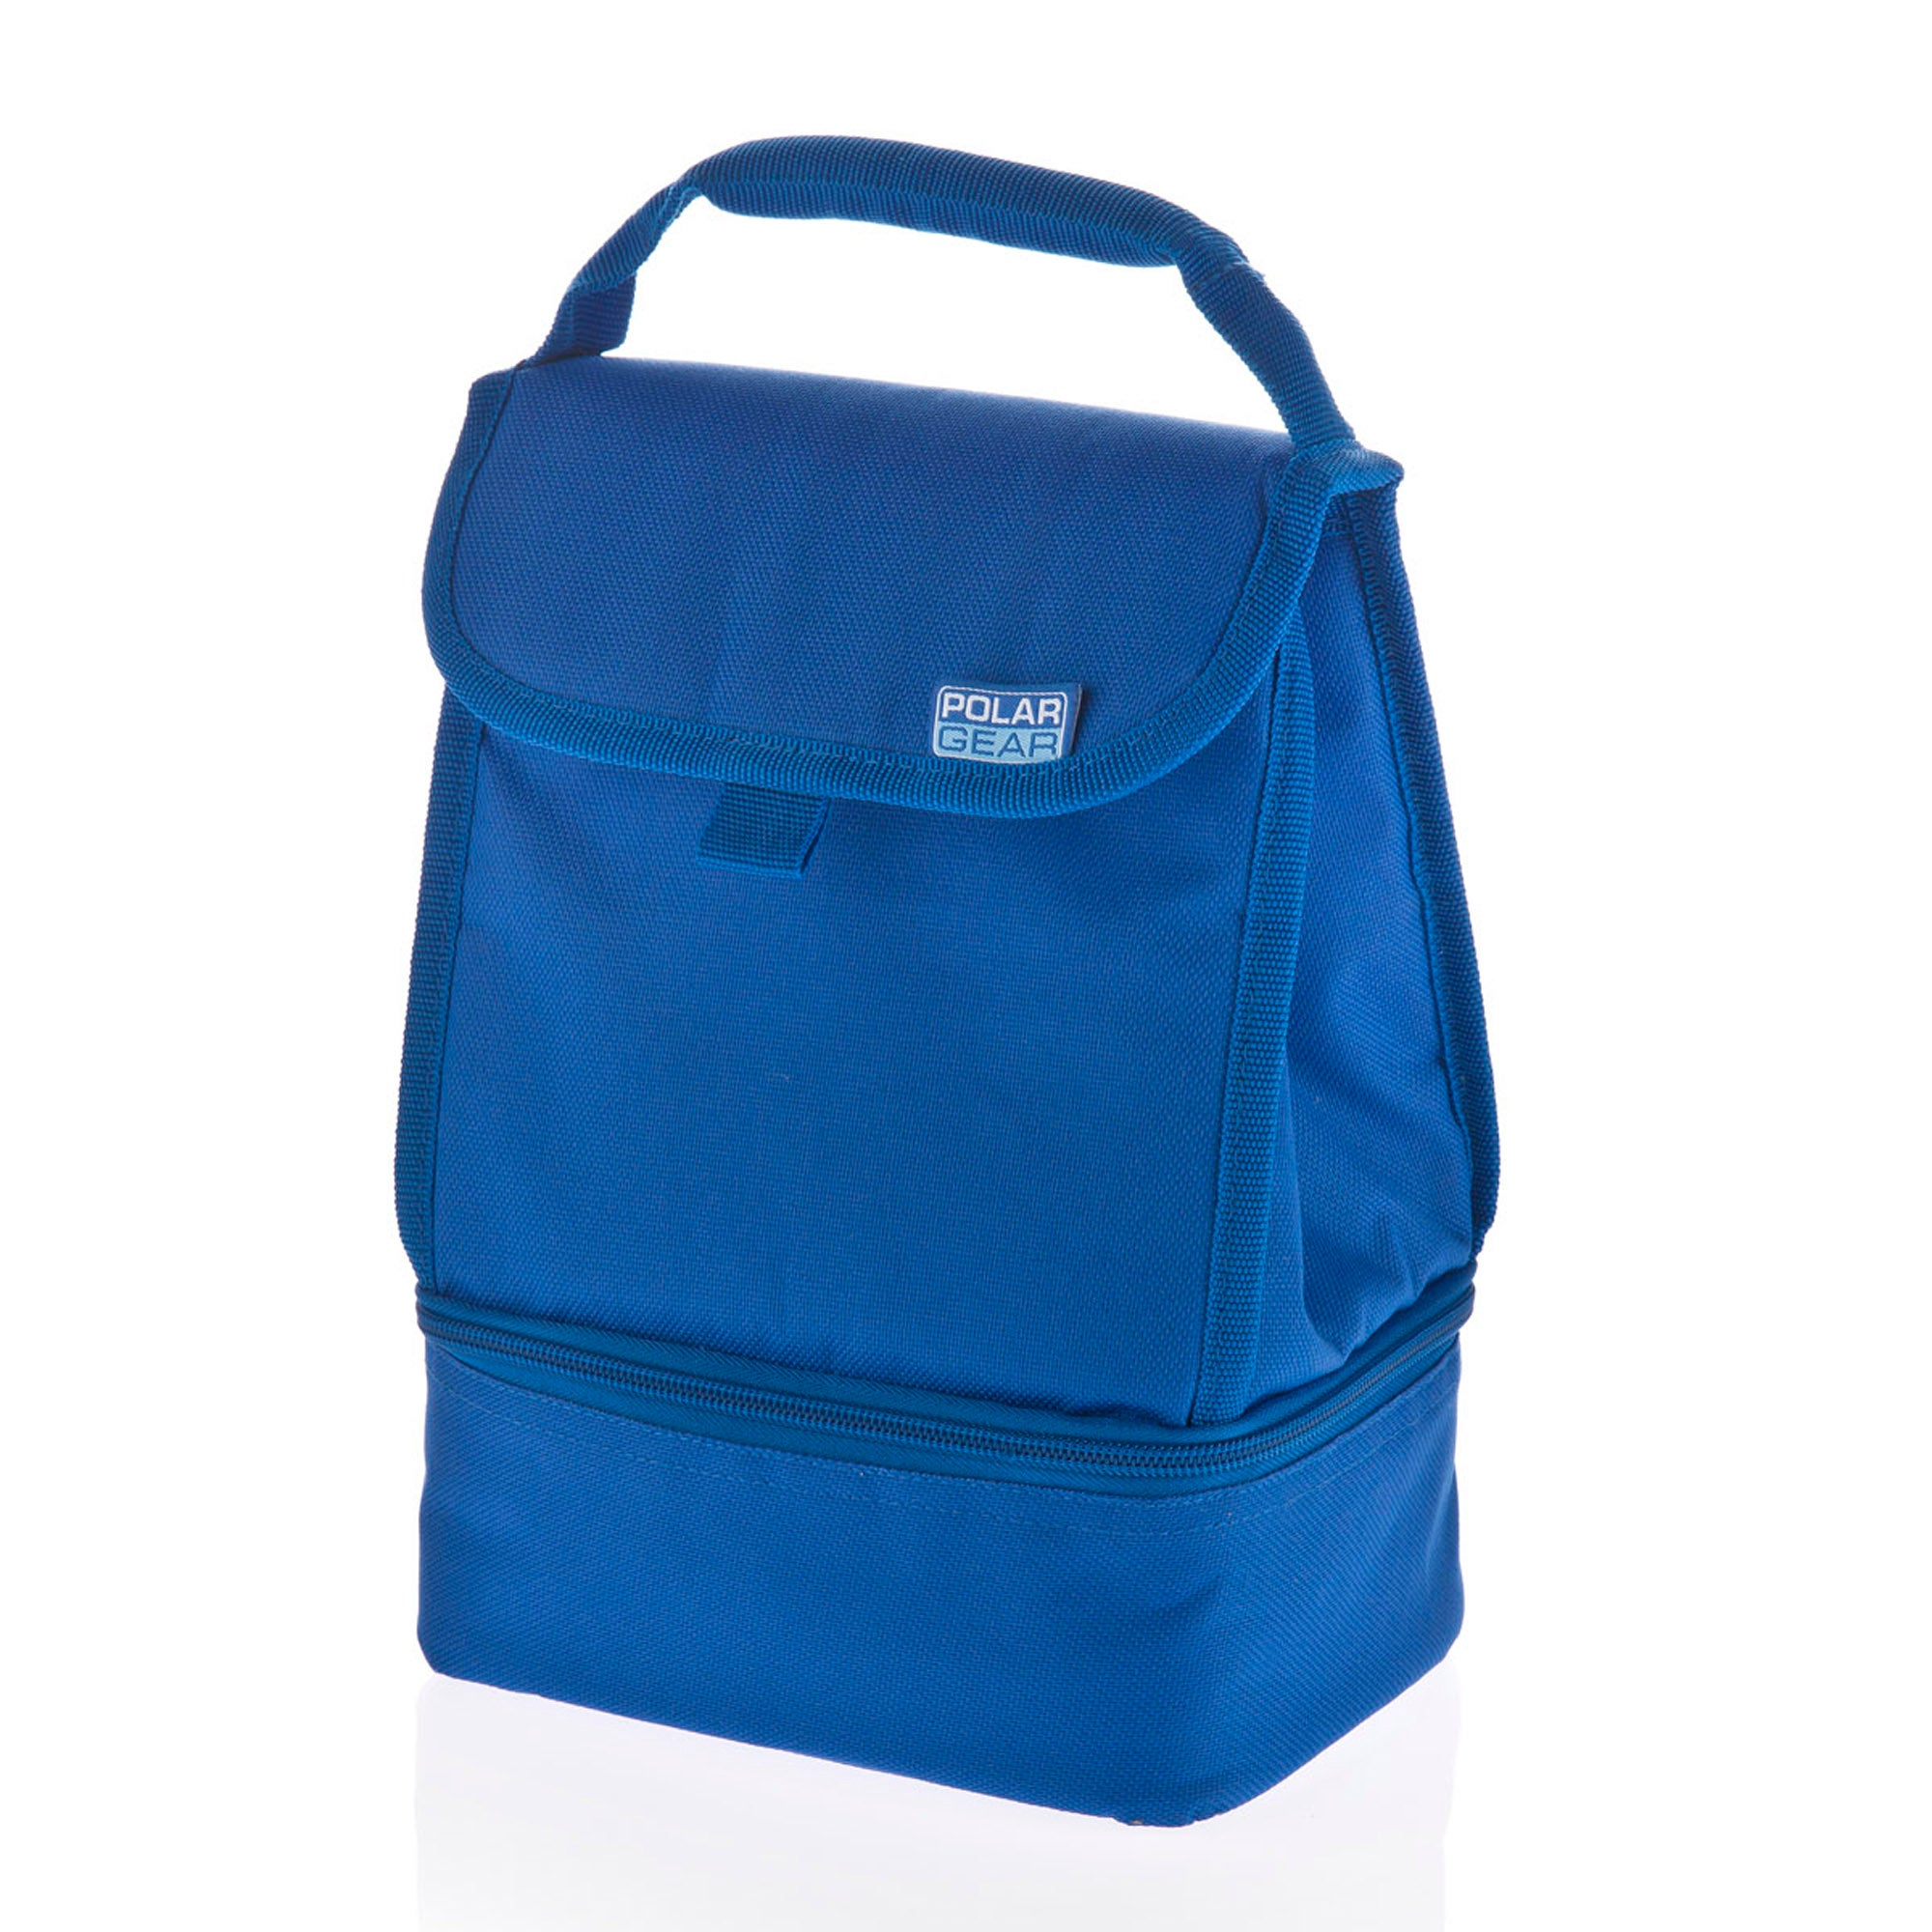 Polar Gear Two Compartment Blue Cooler Bag